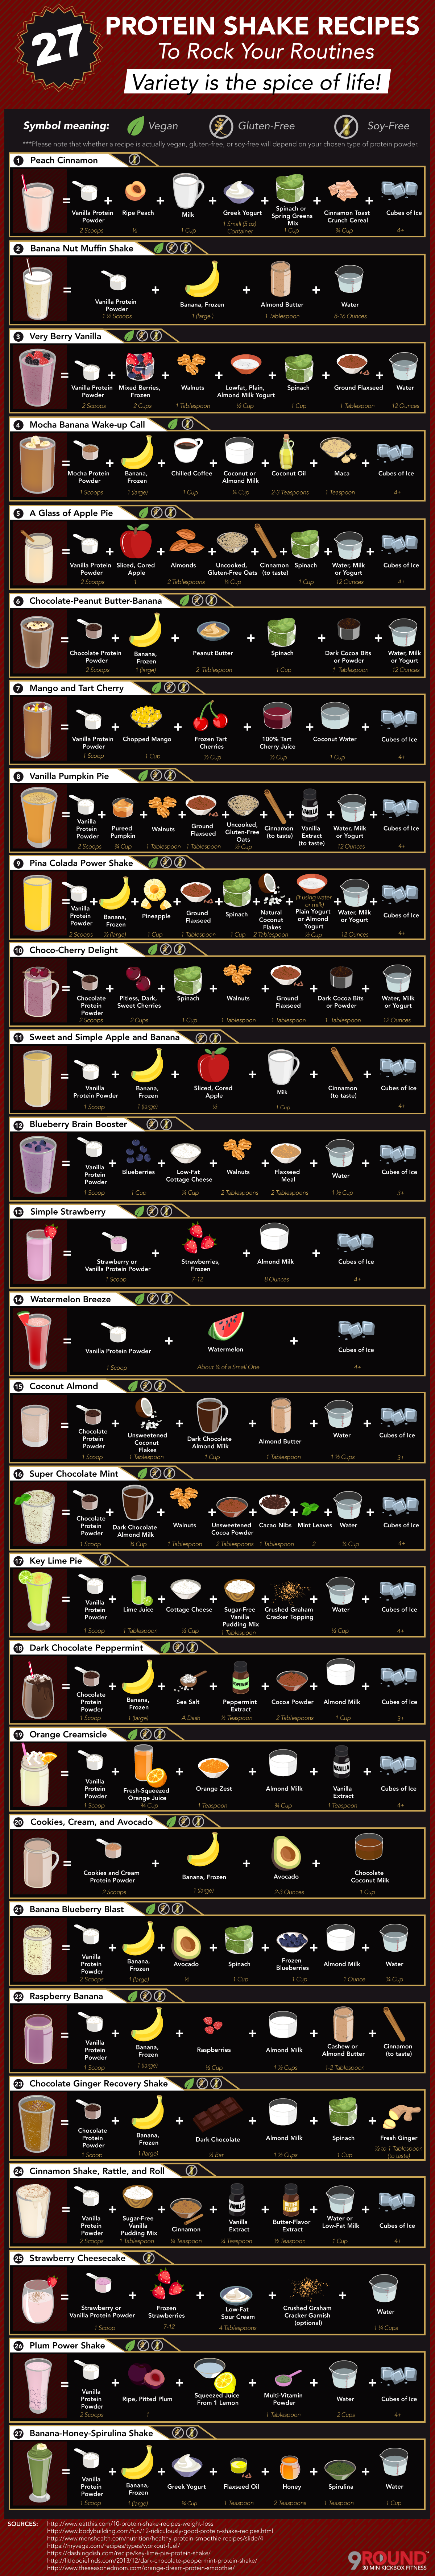 Protein Shake Recipes to Rock Your Routines - 9round.com - Infographic